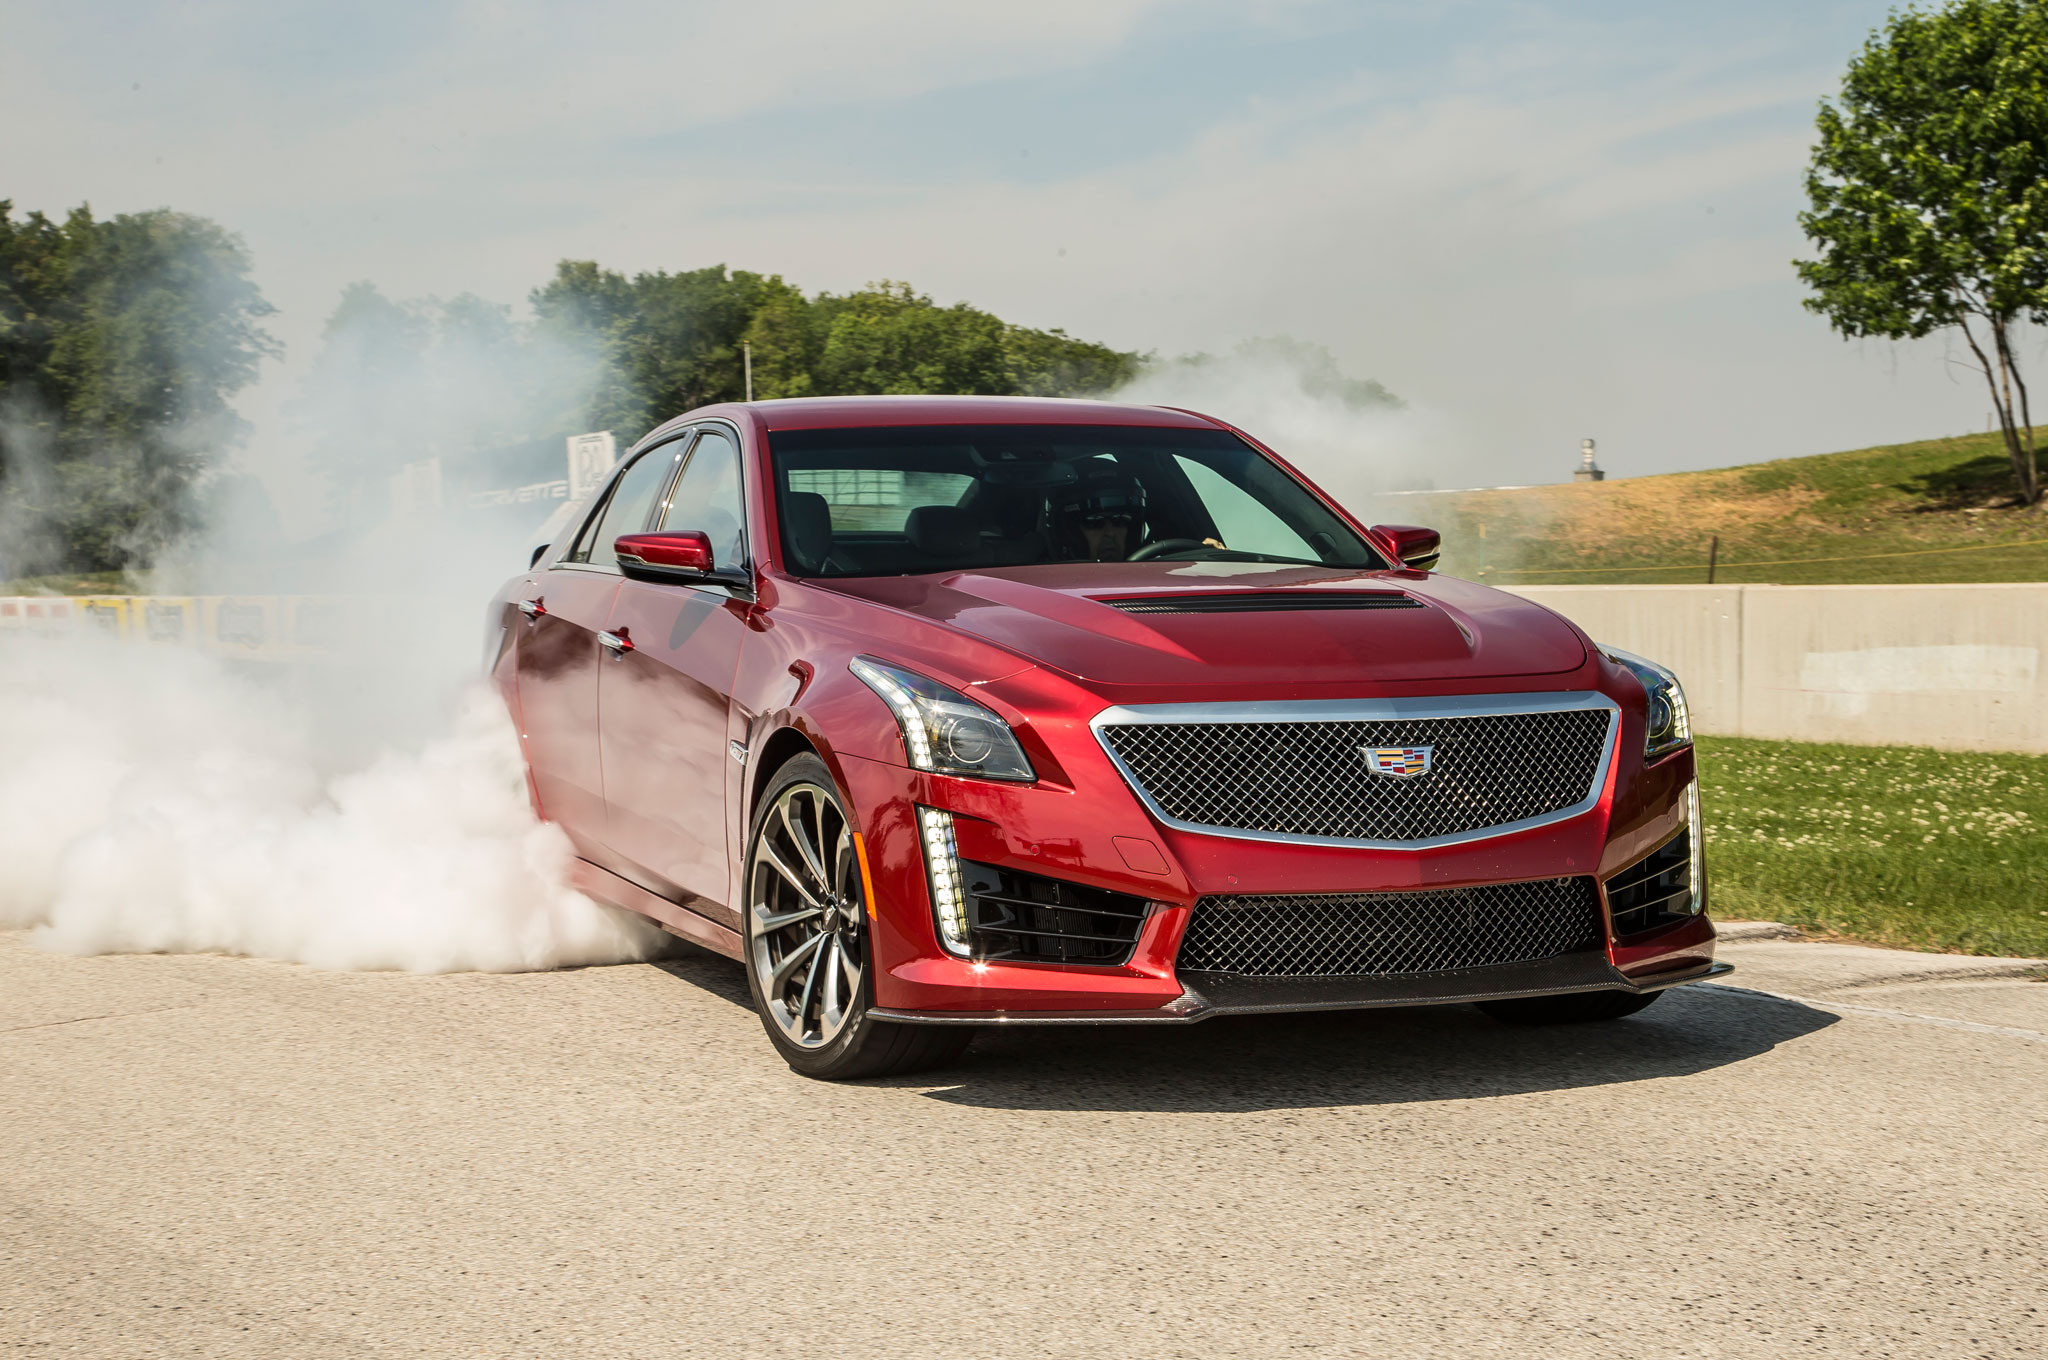 Cadillac V Cars The Ghosts of High Po Caddys Past, Present, and ...